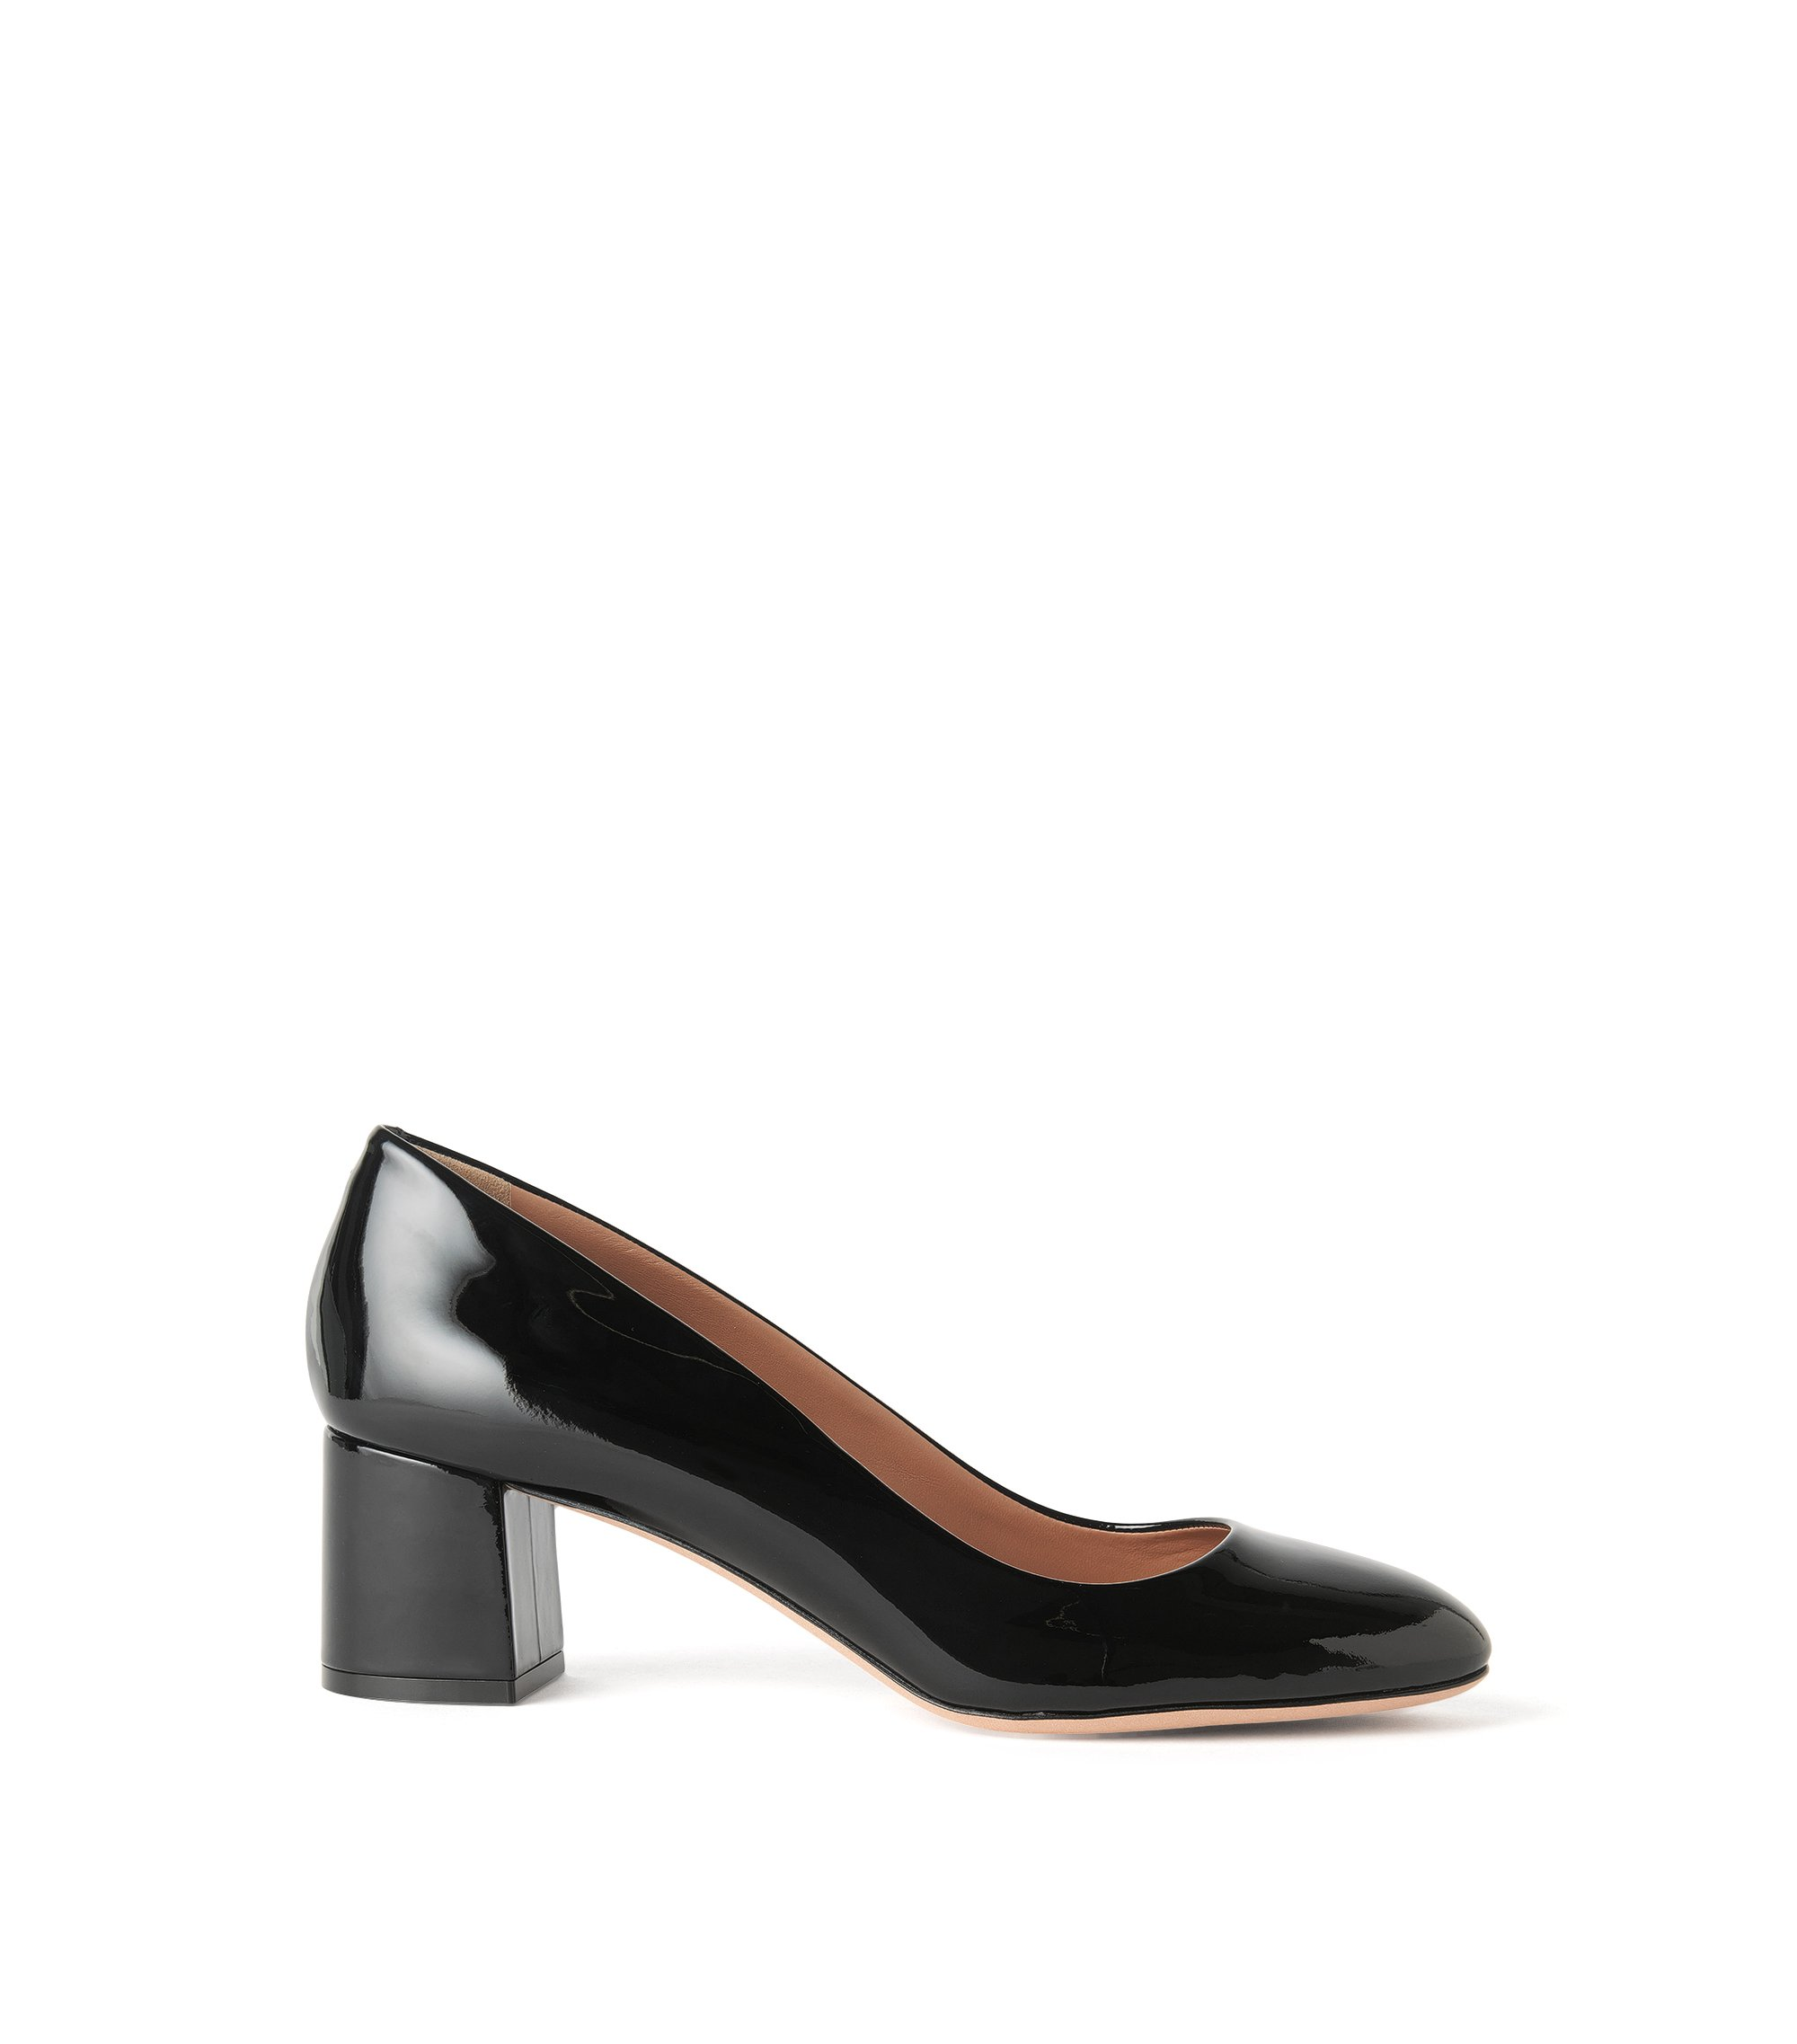 Patent Leather Pump | Taylor Pump, Black